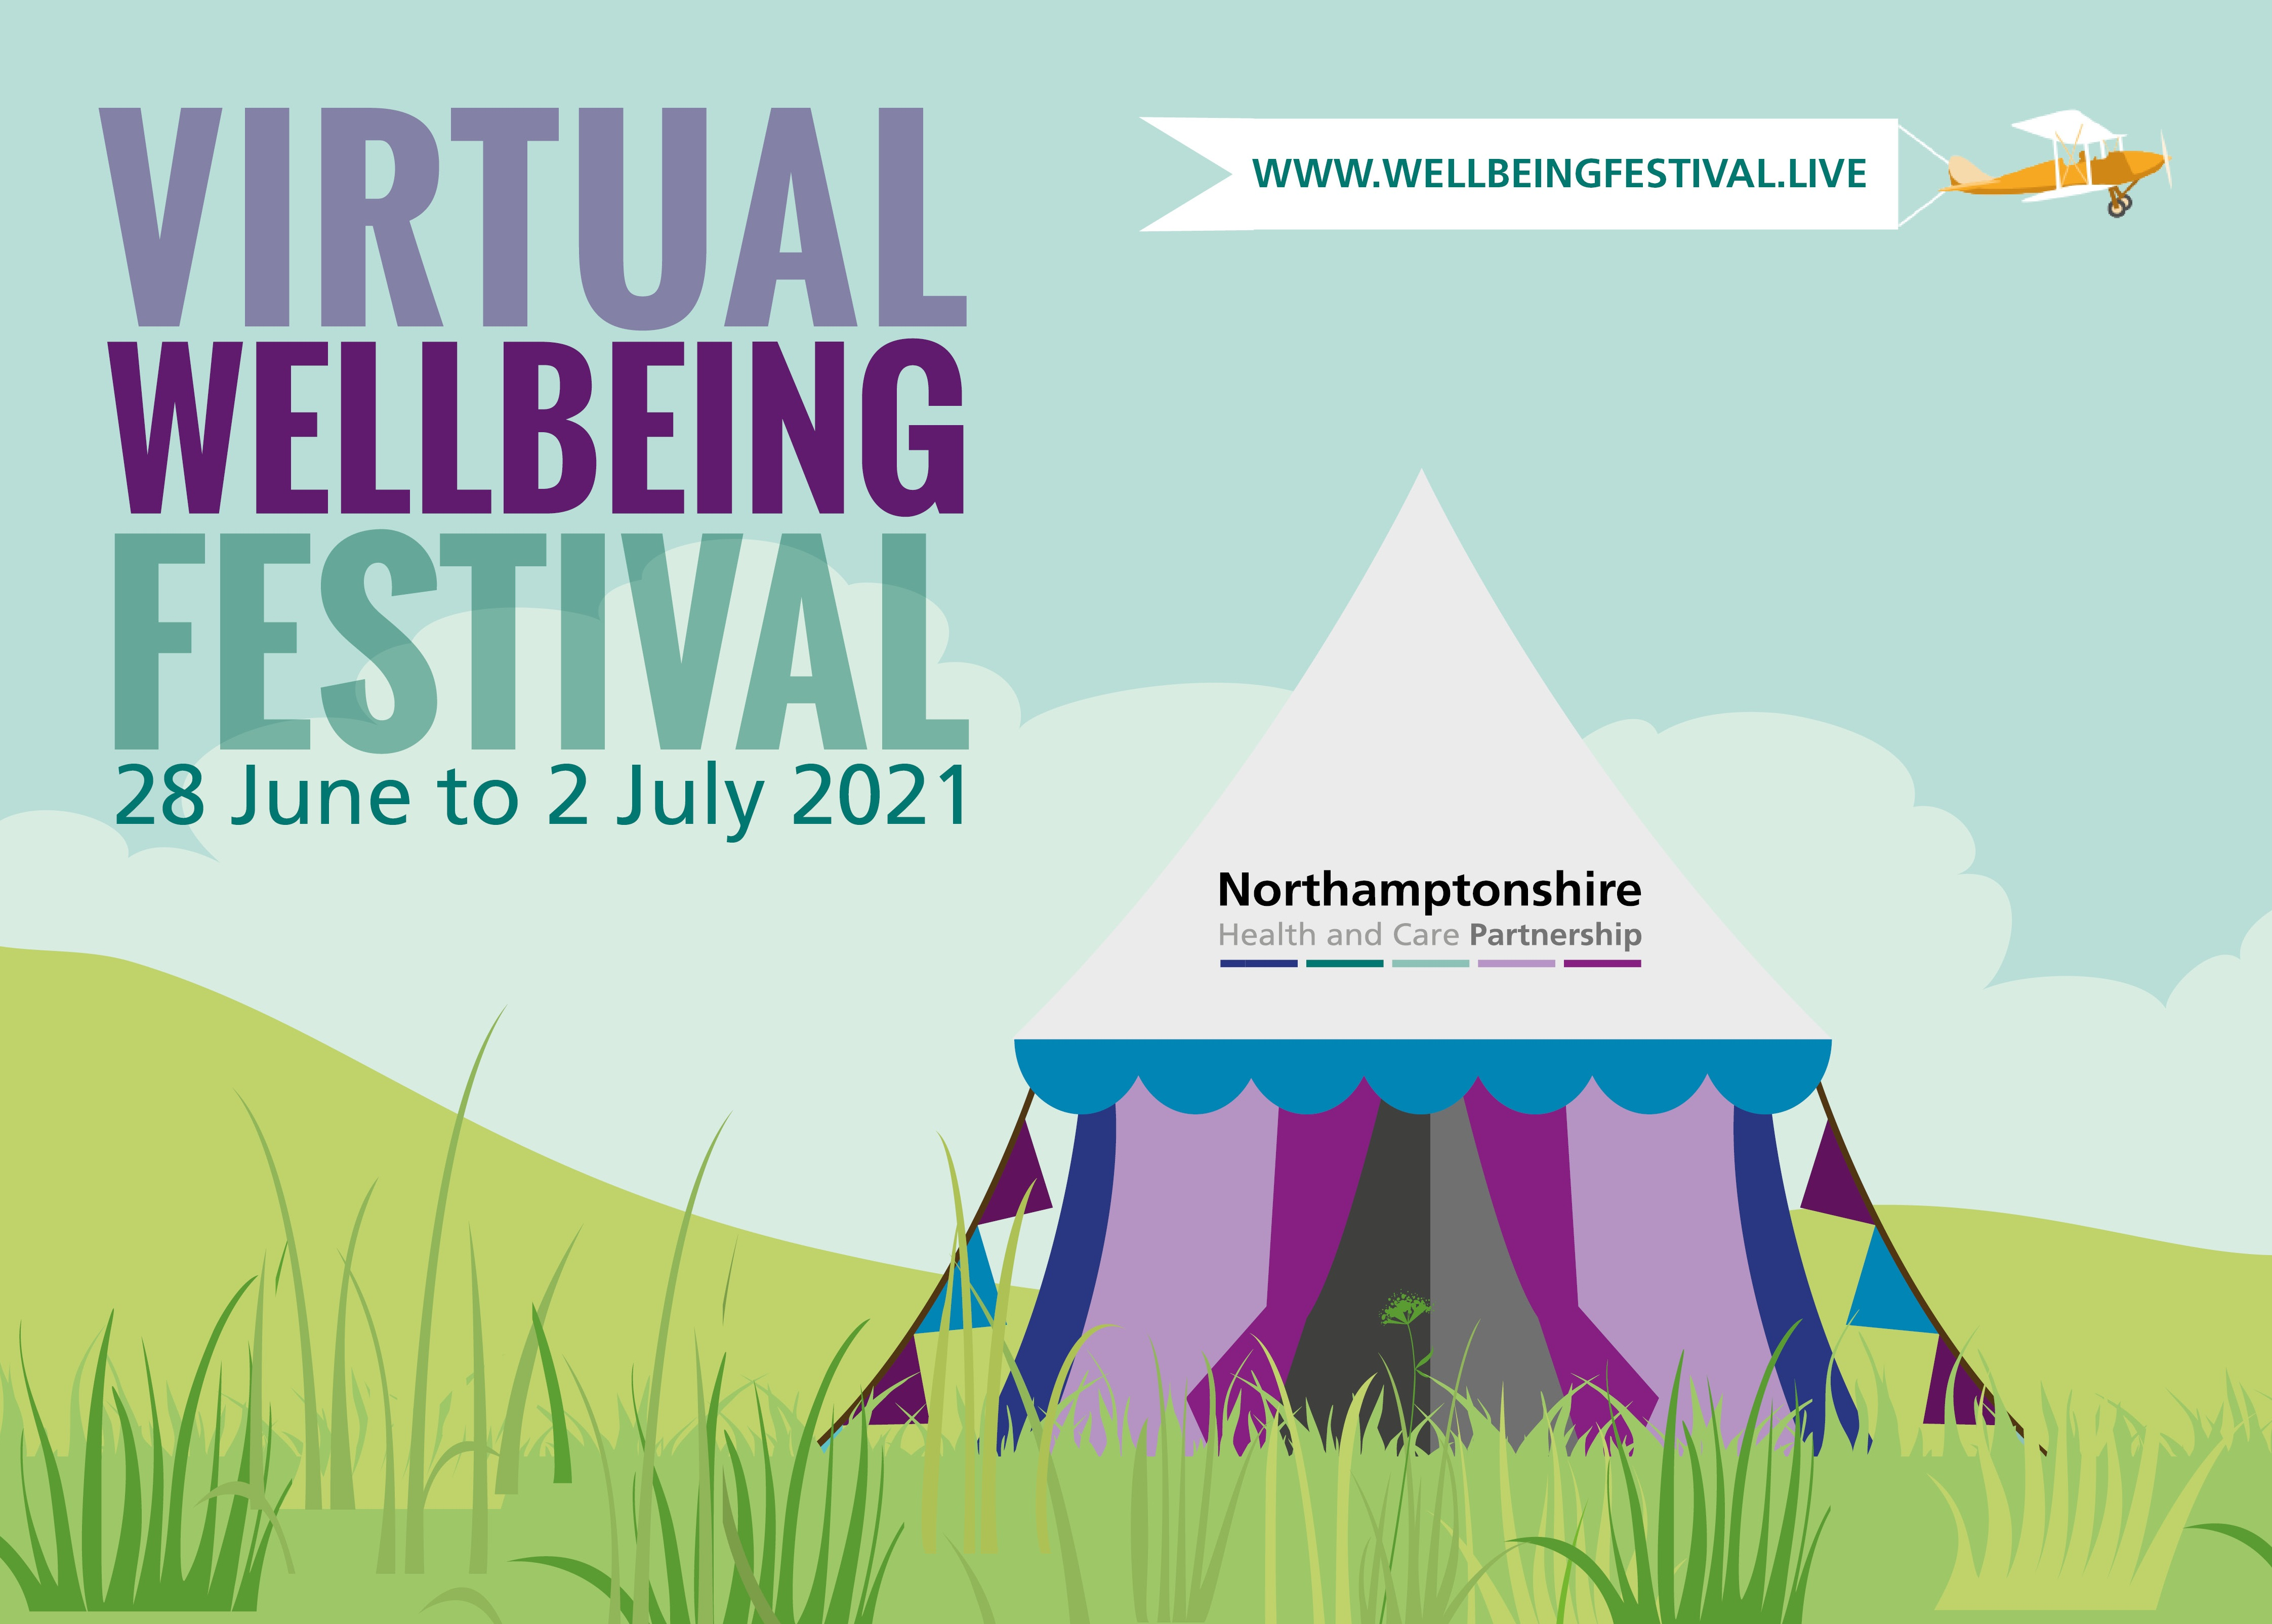 Save the date for Northamptonshire's Virtual Wellbeing Festival 2021!